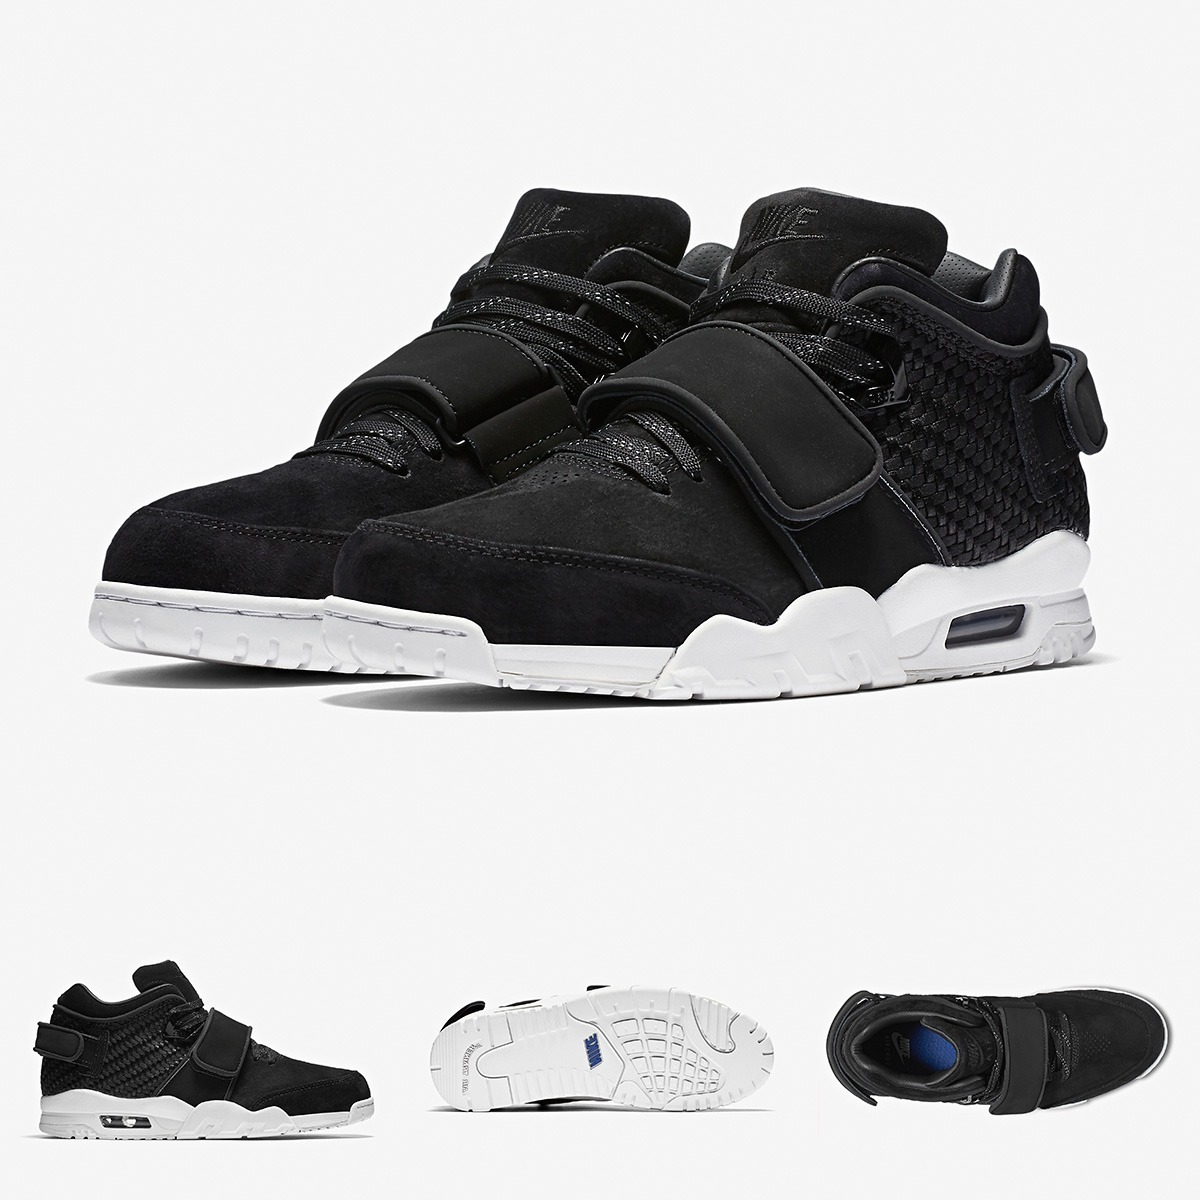 ad5f07ba25 Zapatillas Nike Air Max Trainer V. Cruz